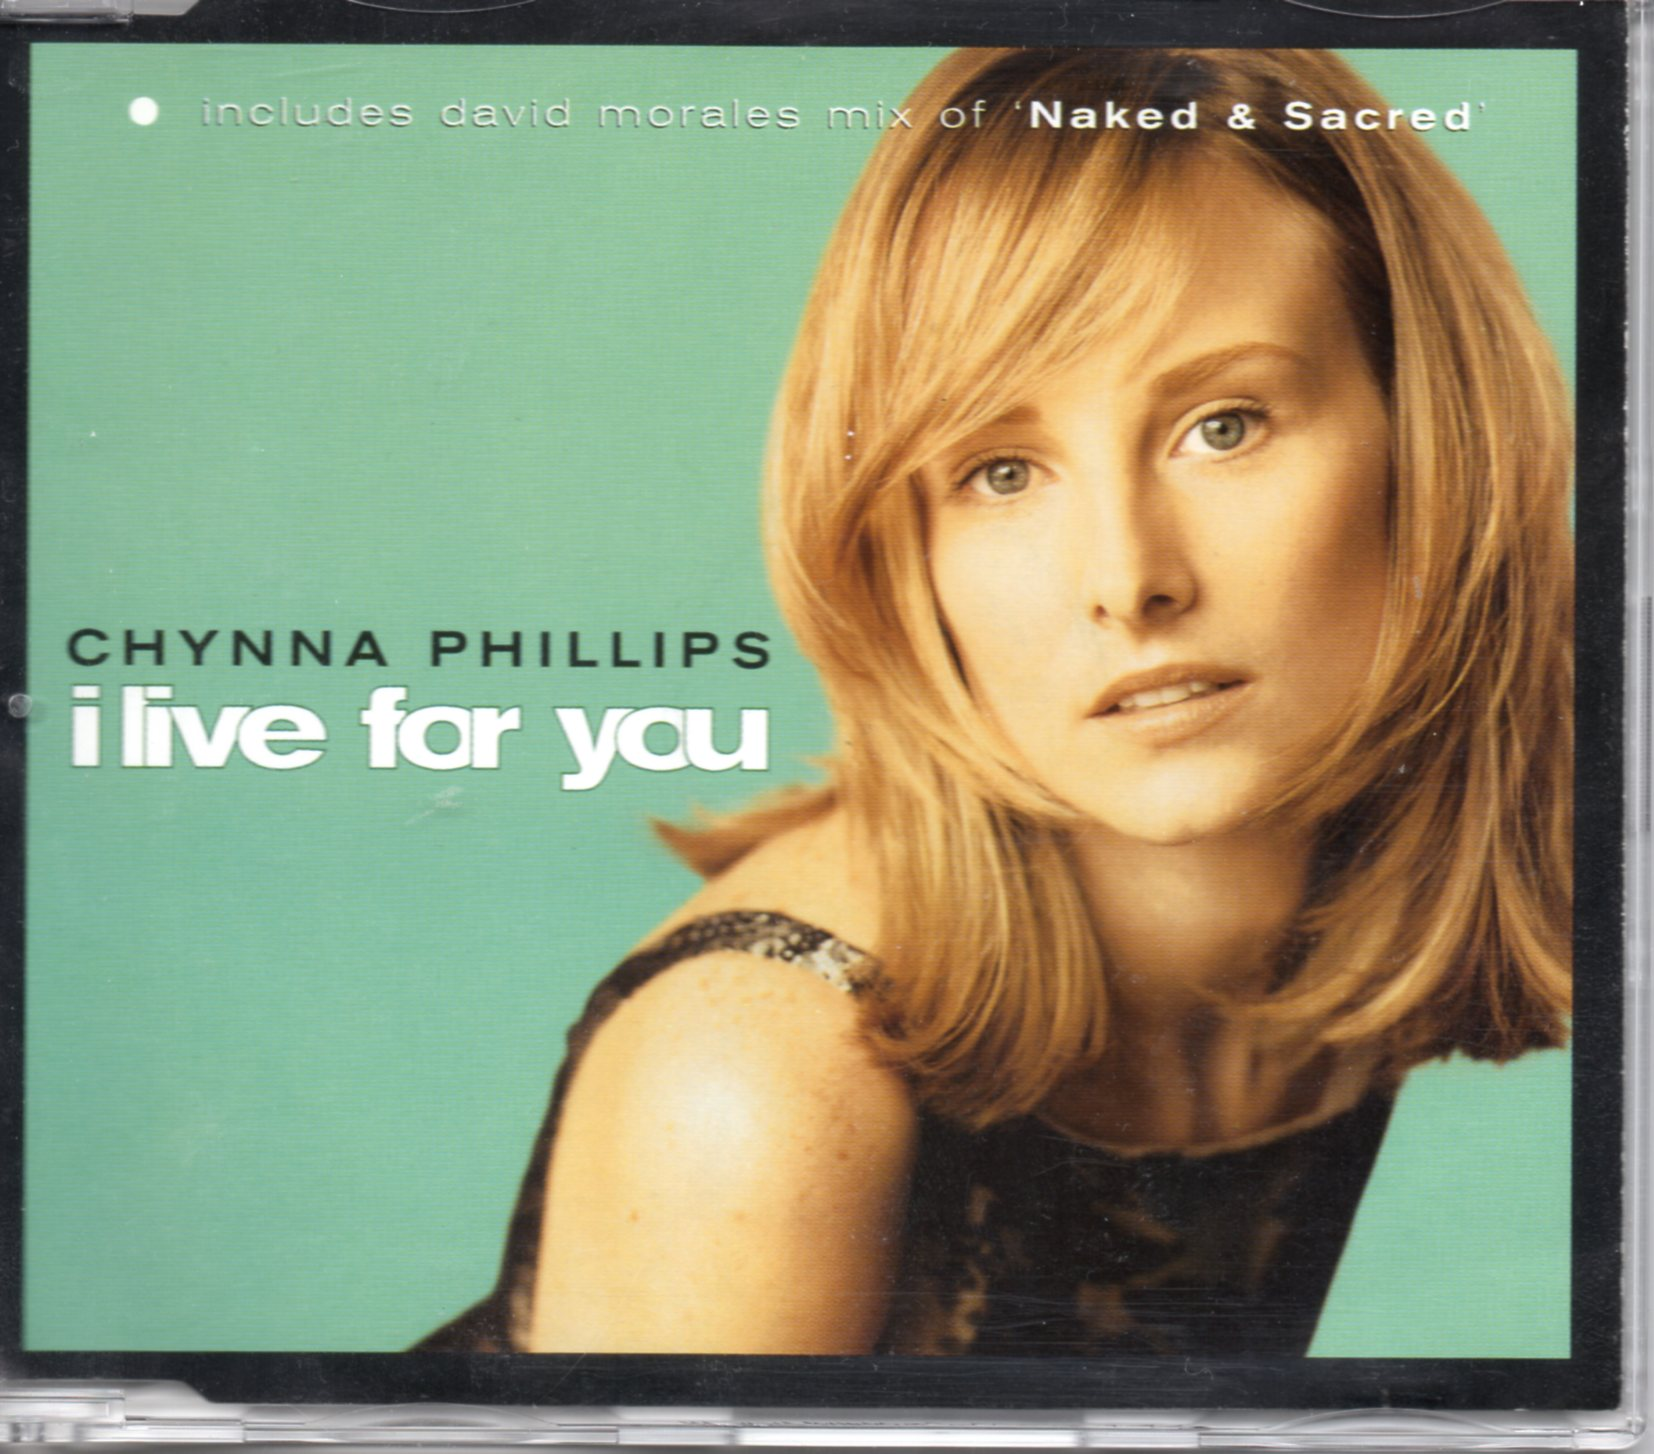 chynna phillips i live for you перевод песниchynna phillips i live for you перевод песни, chynna phillips wiki, chynna phillips instagram, chynna phillips i live for you, chynna phillips youtube, chynna phillips i live for you mp3, chynna phillips net worth, chynna phillips and billy baldwin, chynna phillips daughter, chynna phillips family, chynna phillips dancing with the stars, chynna phillips plastic surgery, chynna phillips hold on, chynna phillips twitter, chynna phillips baldwin